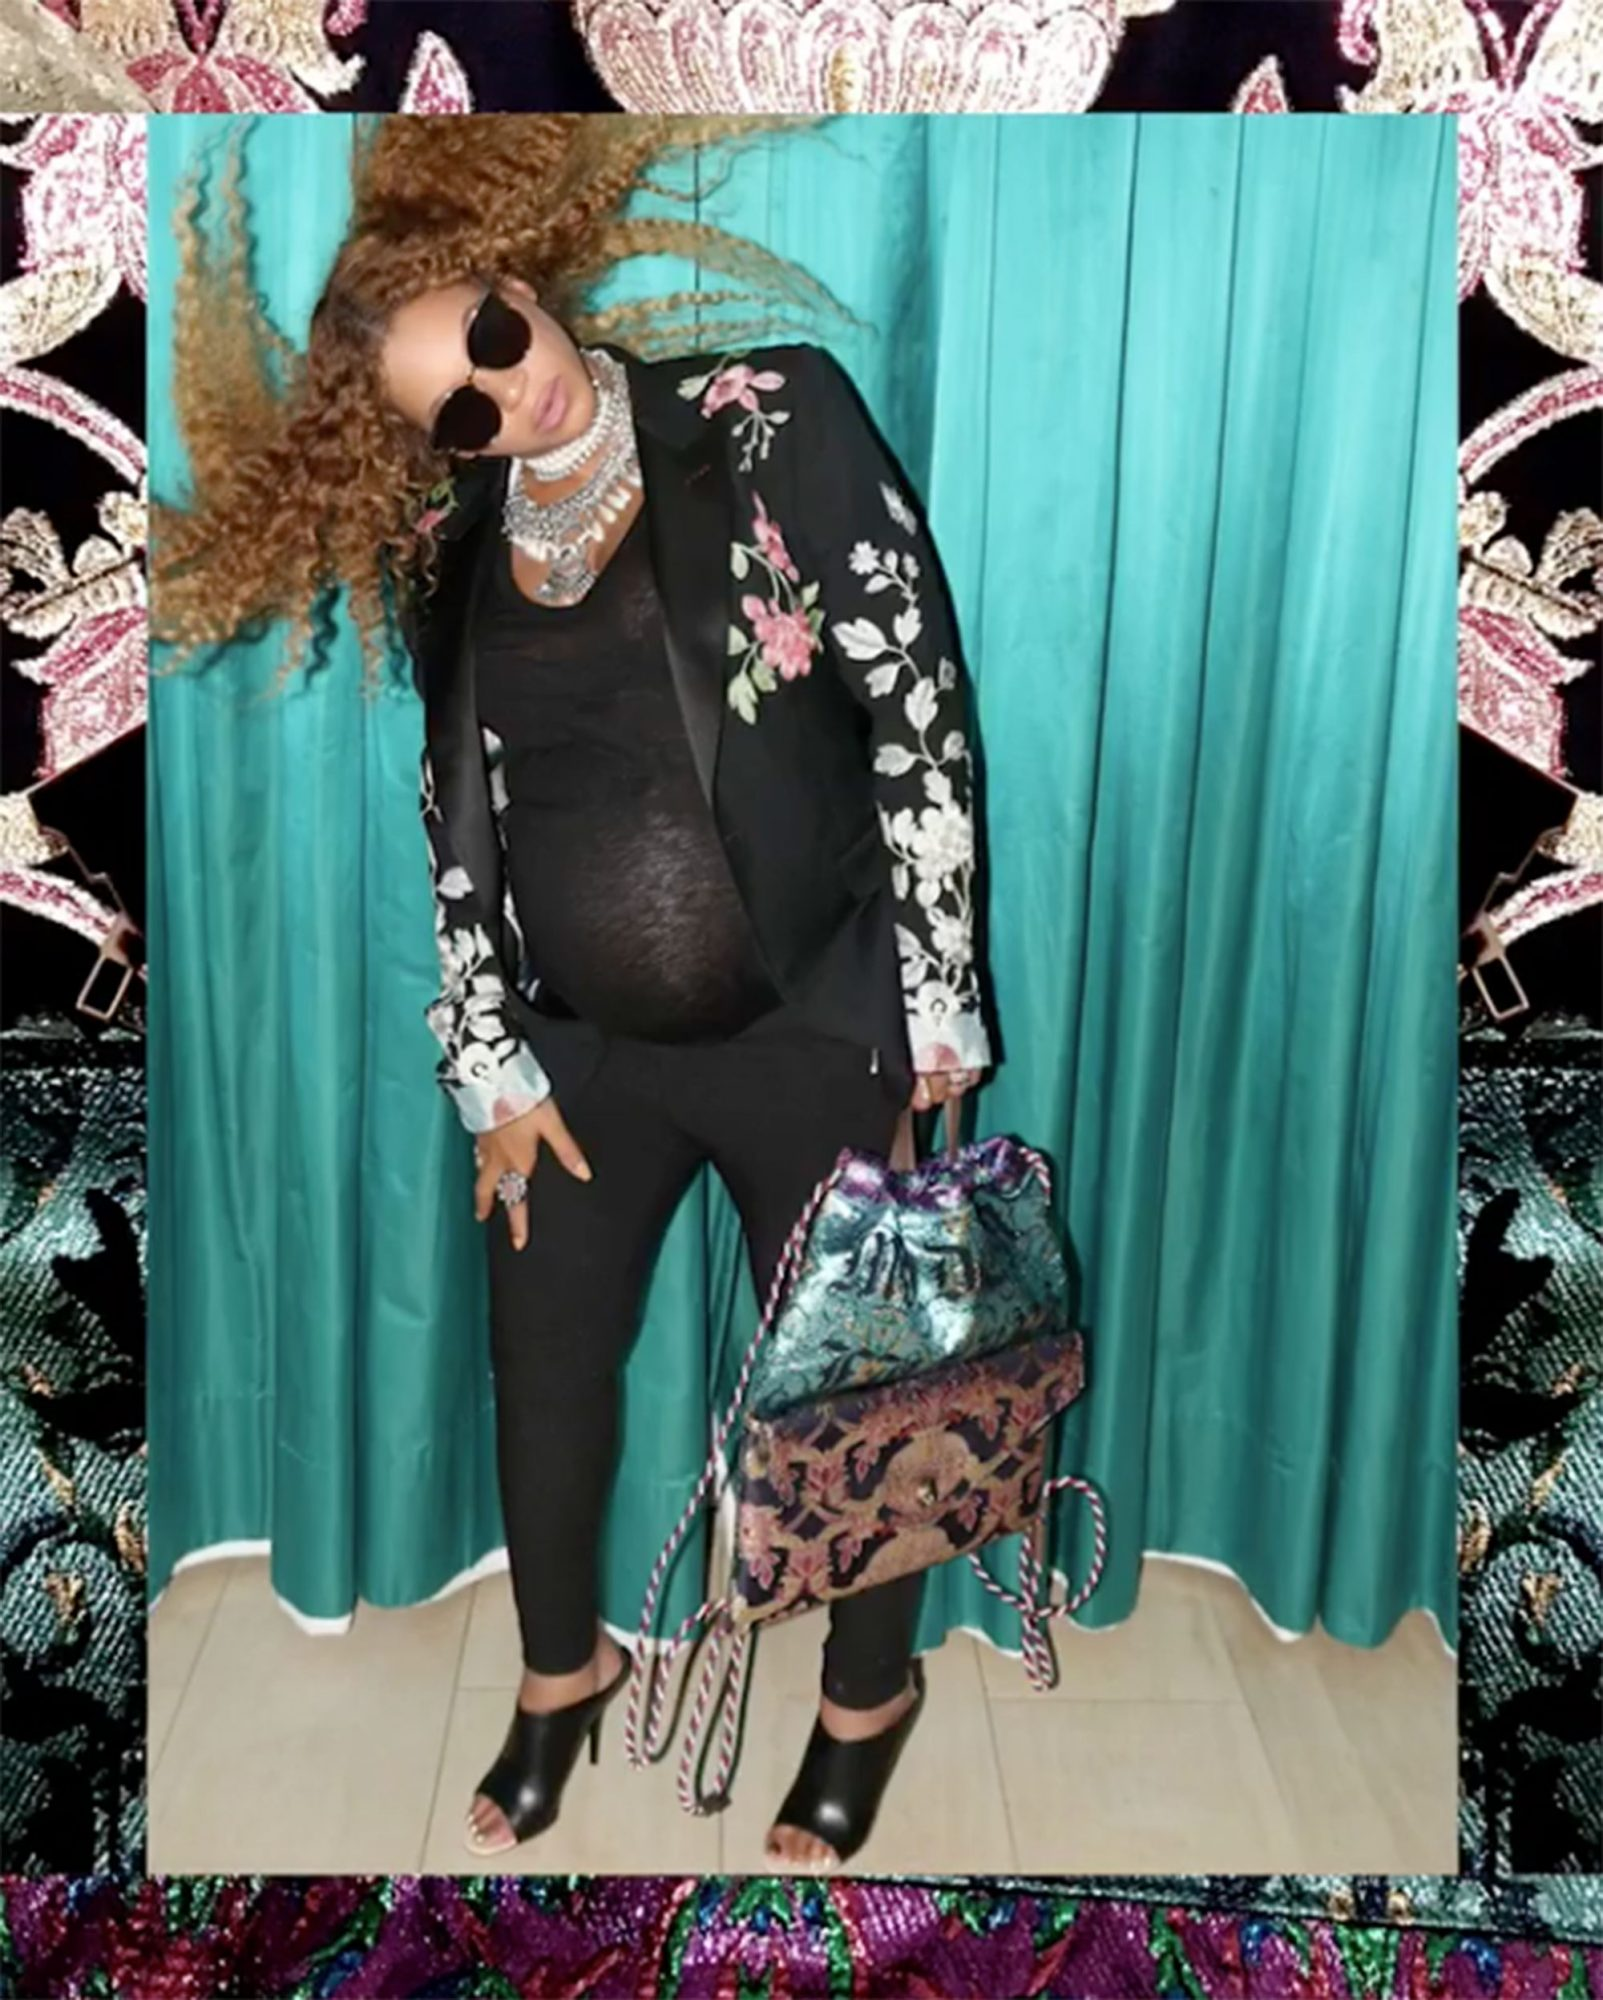 beyonce-courtside-outfit-3